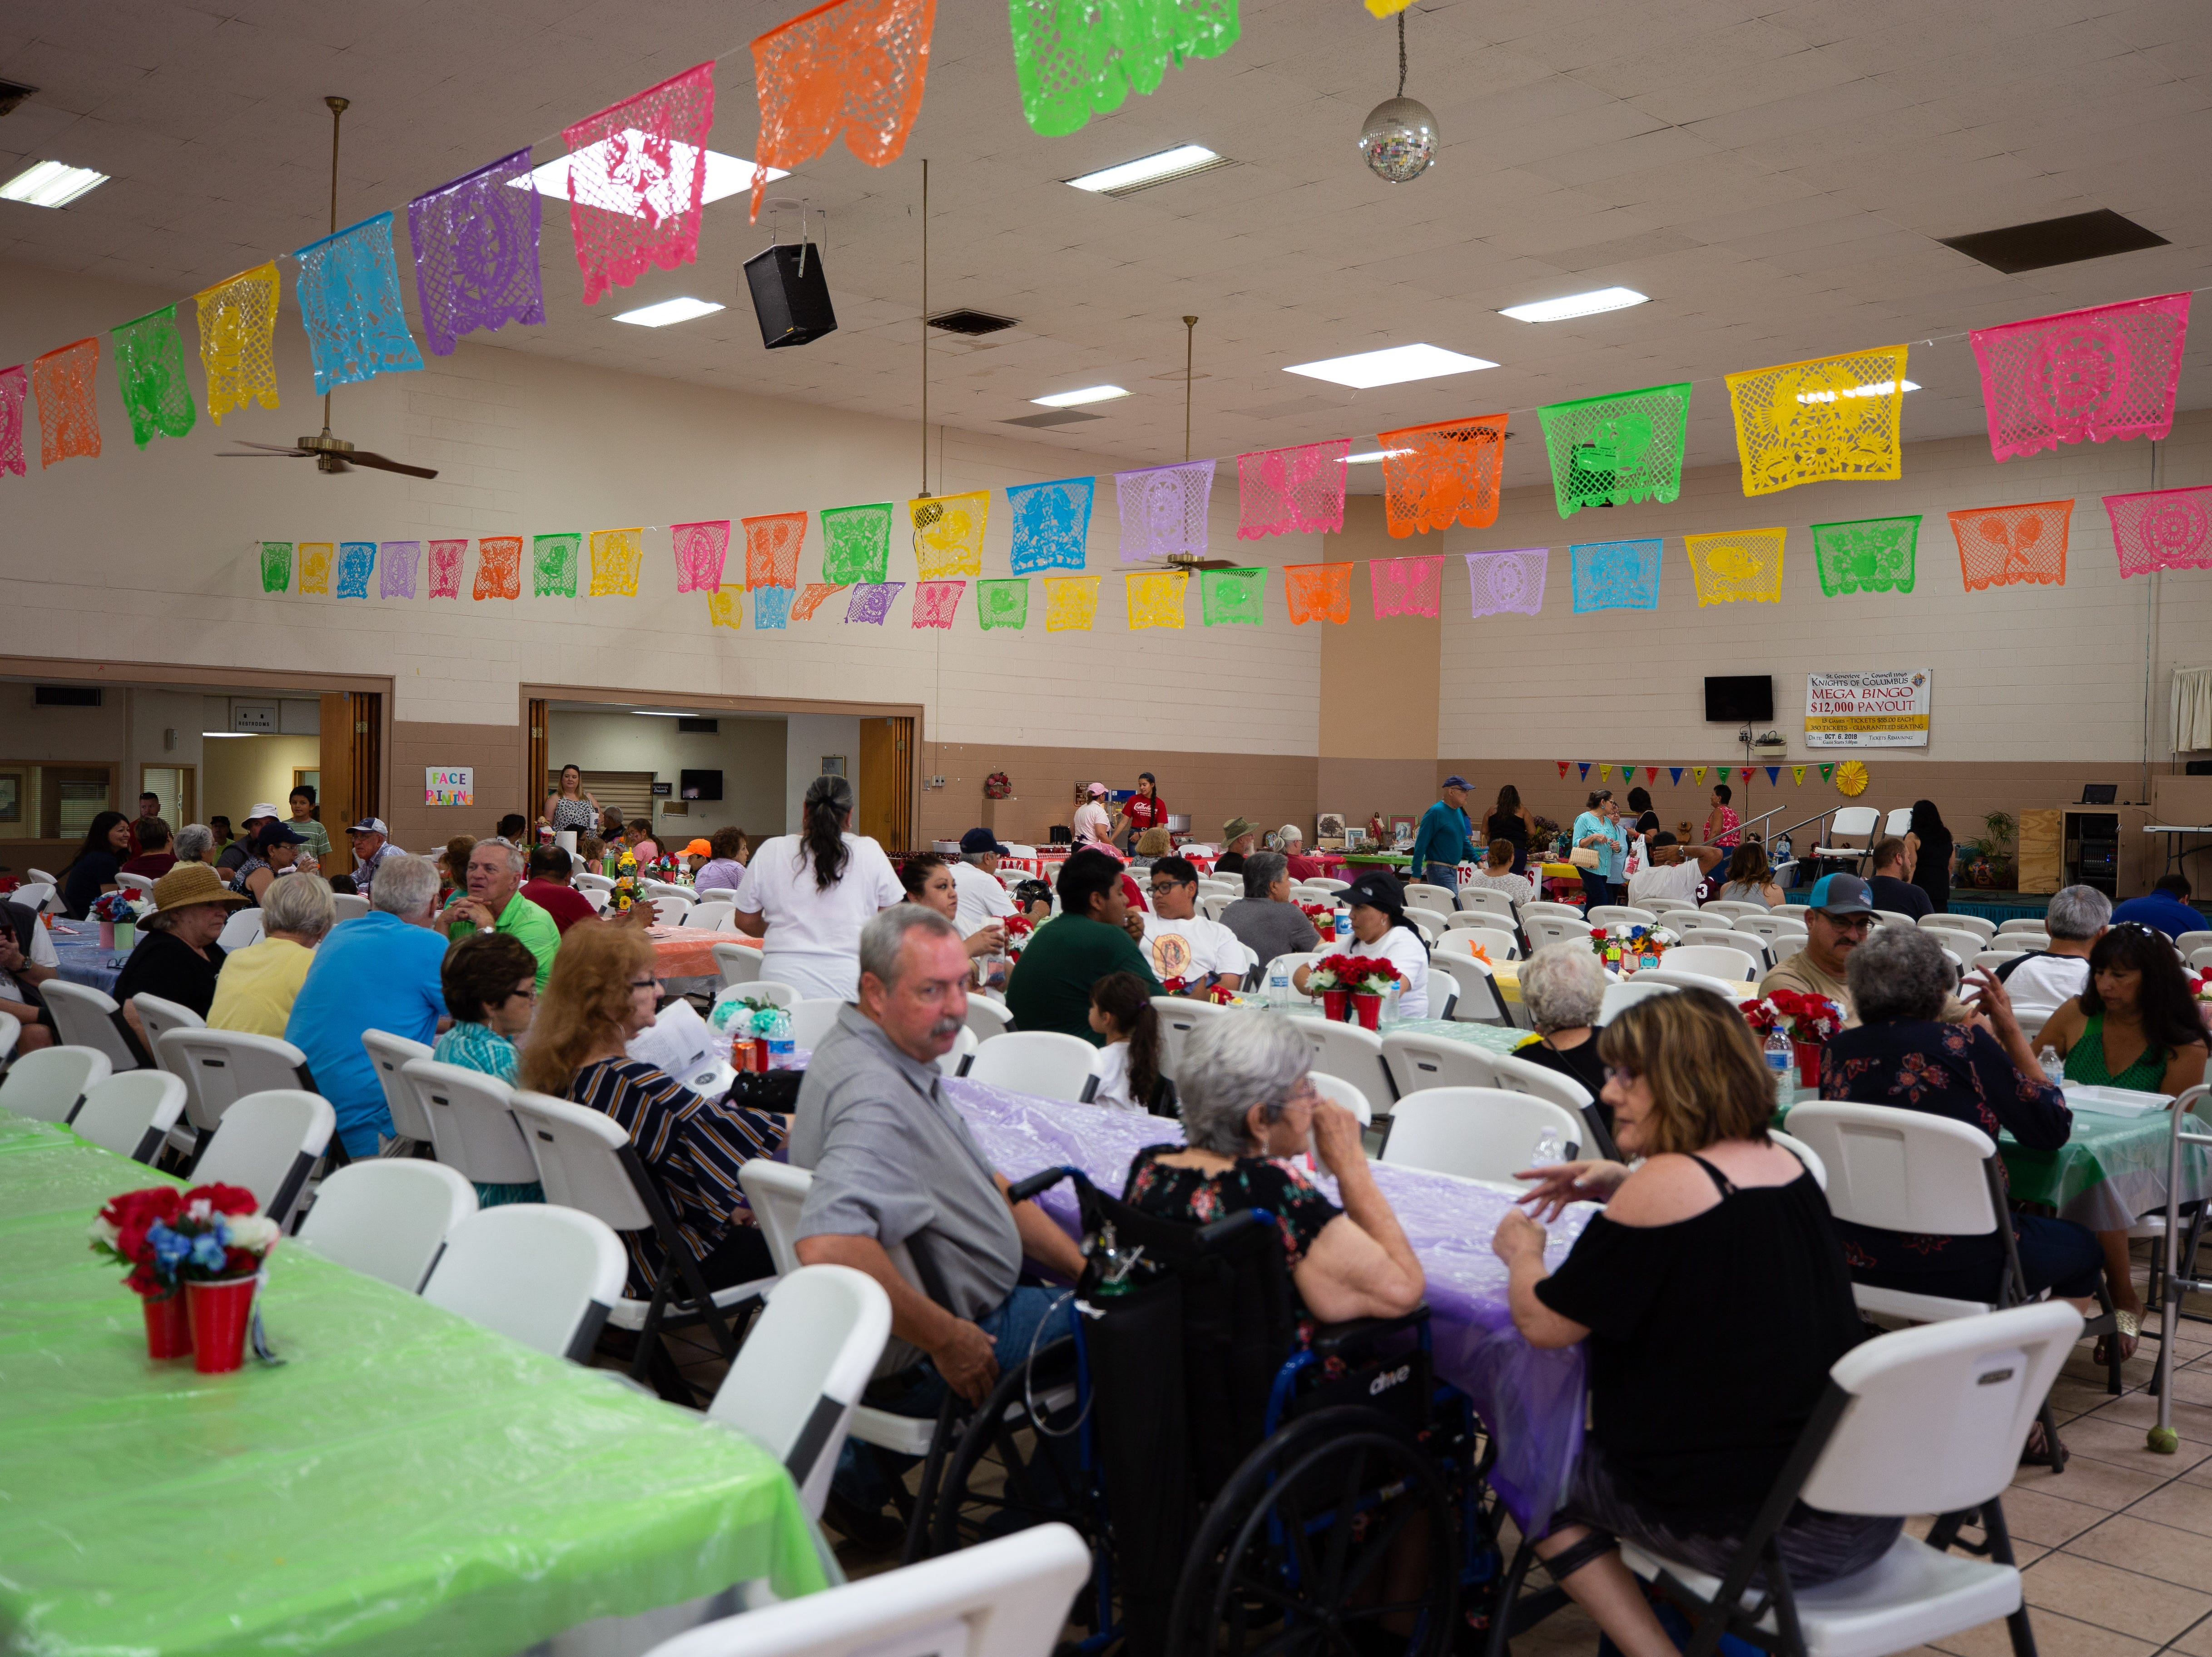 Fiesta attendees relax in the cool comfort of the parish hall at the St. Genevieve Fiesta on Saturday, Sept. 8, 2018.